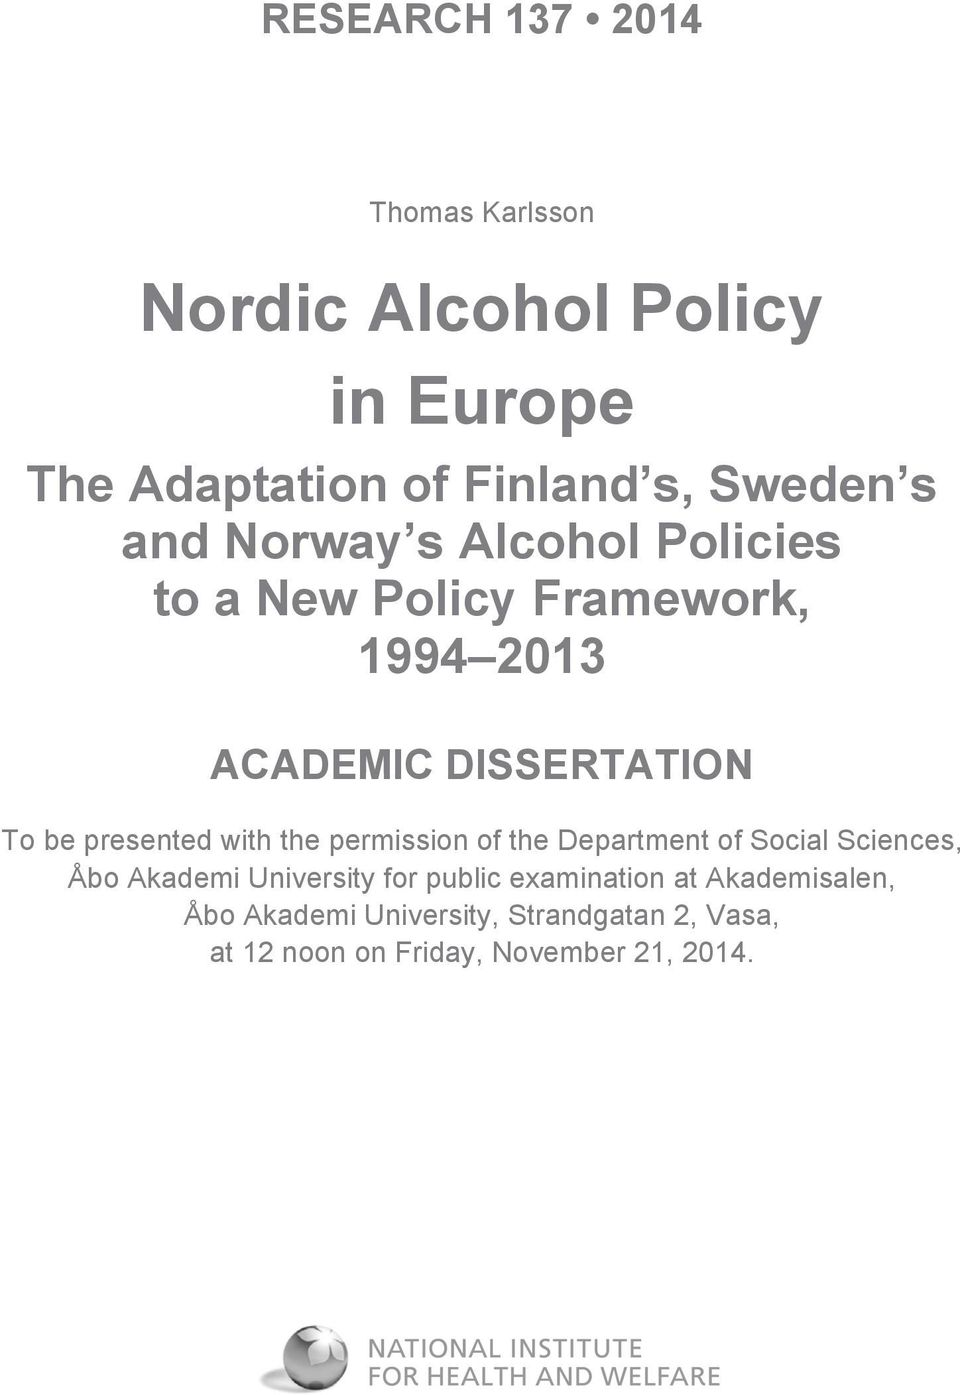 presented with the permission of the Department of Social Sciences, Åbo Akademi University for public